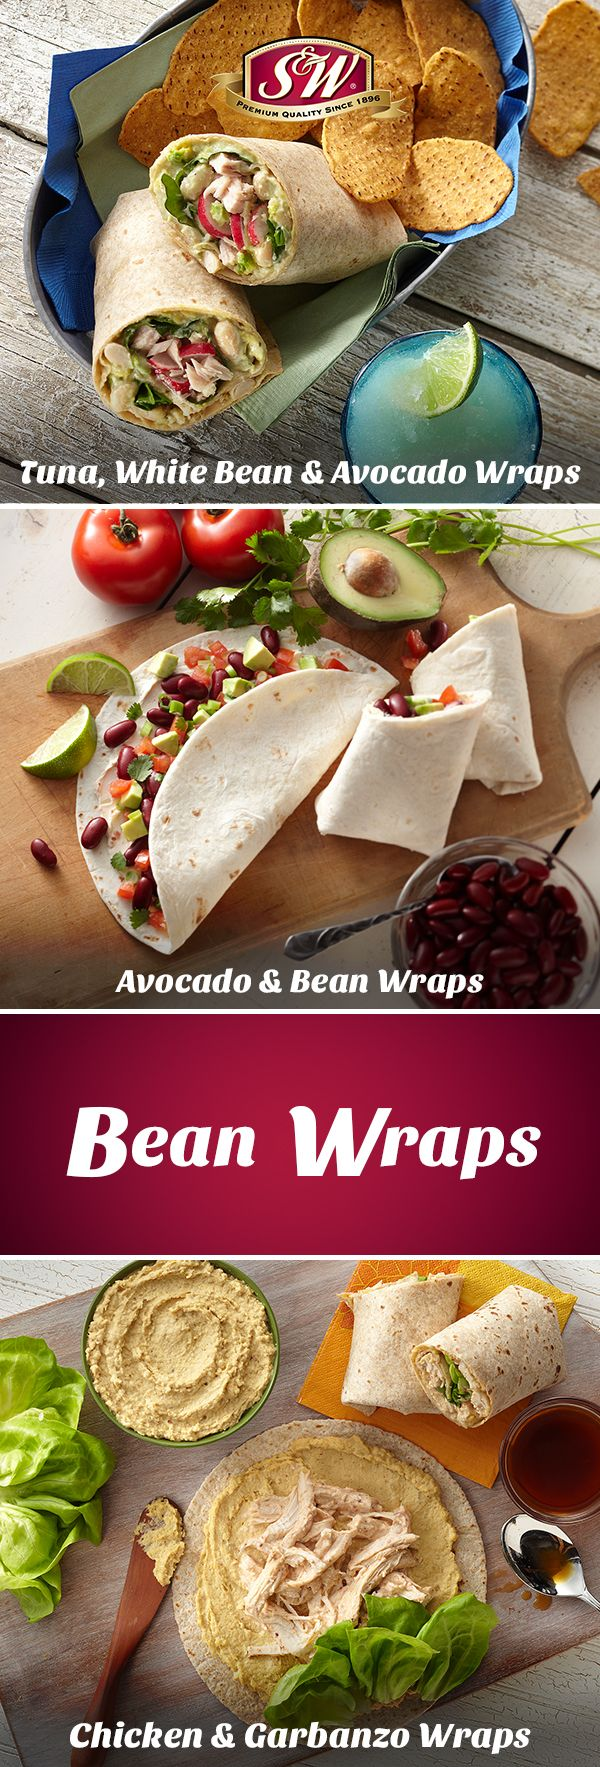 Make any of these three bean-tastic wraps in under 30 minutes and add an extra punch to your lunch!  | S&W Beans | White Beans | Cannellini Beans | Garbanzo Beans | Kidney Beans | Tuna, White Bean and Avocado Wraps | Avocado and Bean Wraps | Chicken and Garbanzo Wraps | easy lunch recipes | snacks | meal prep |